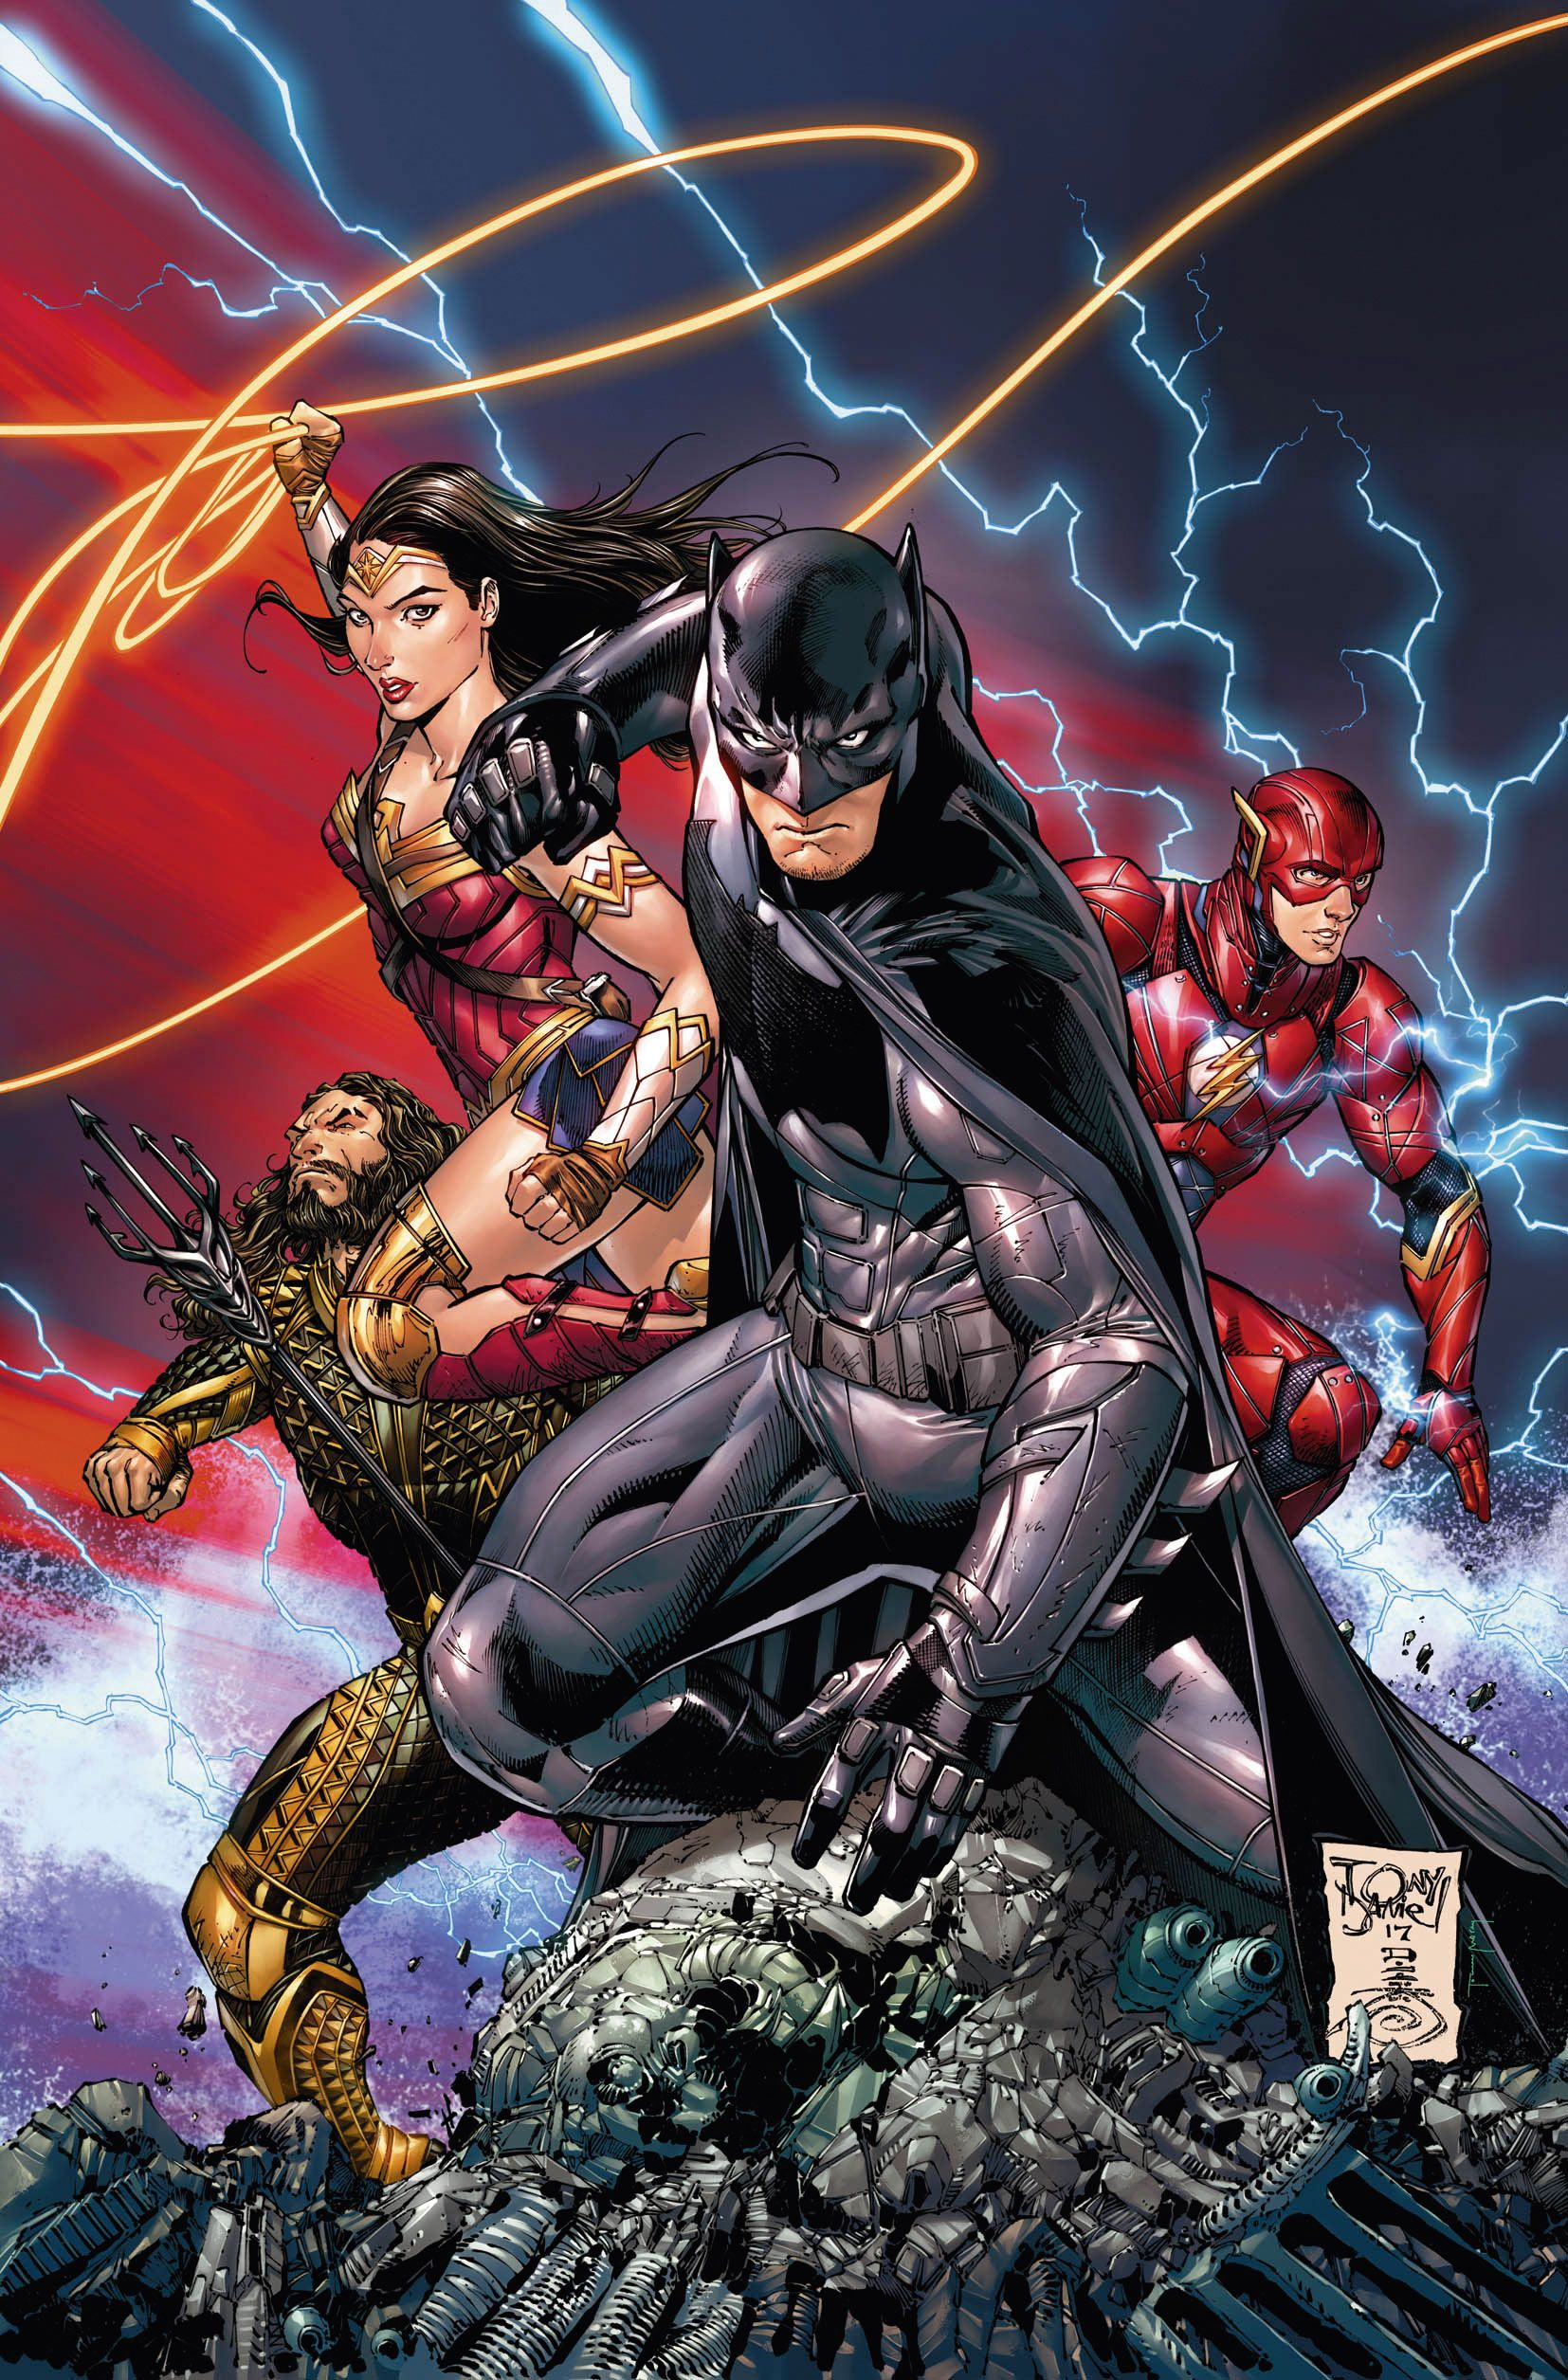 What its like to be a Batman artist: Tony S Daniel shares his story